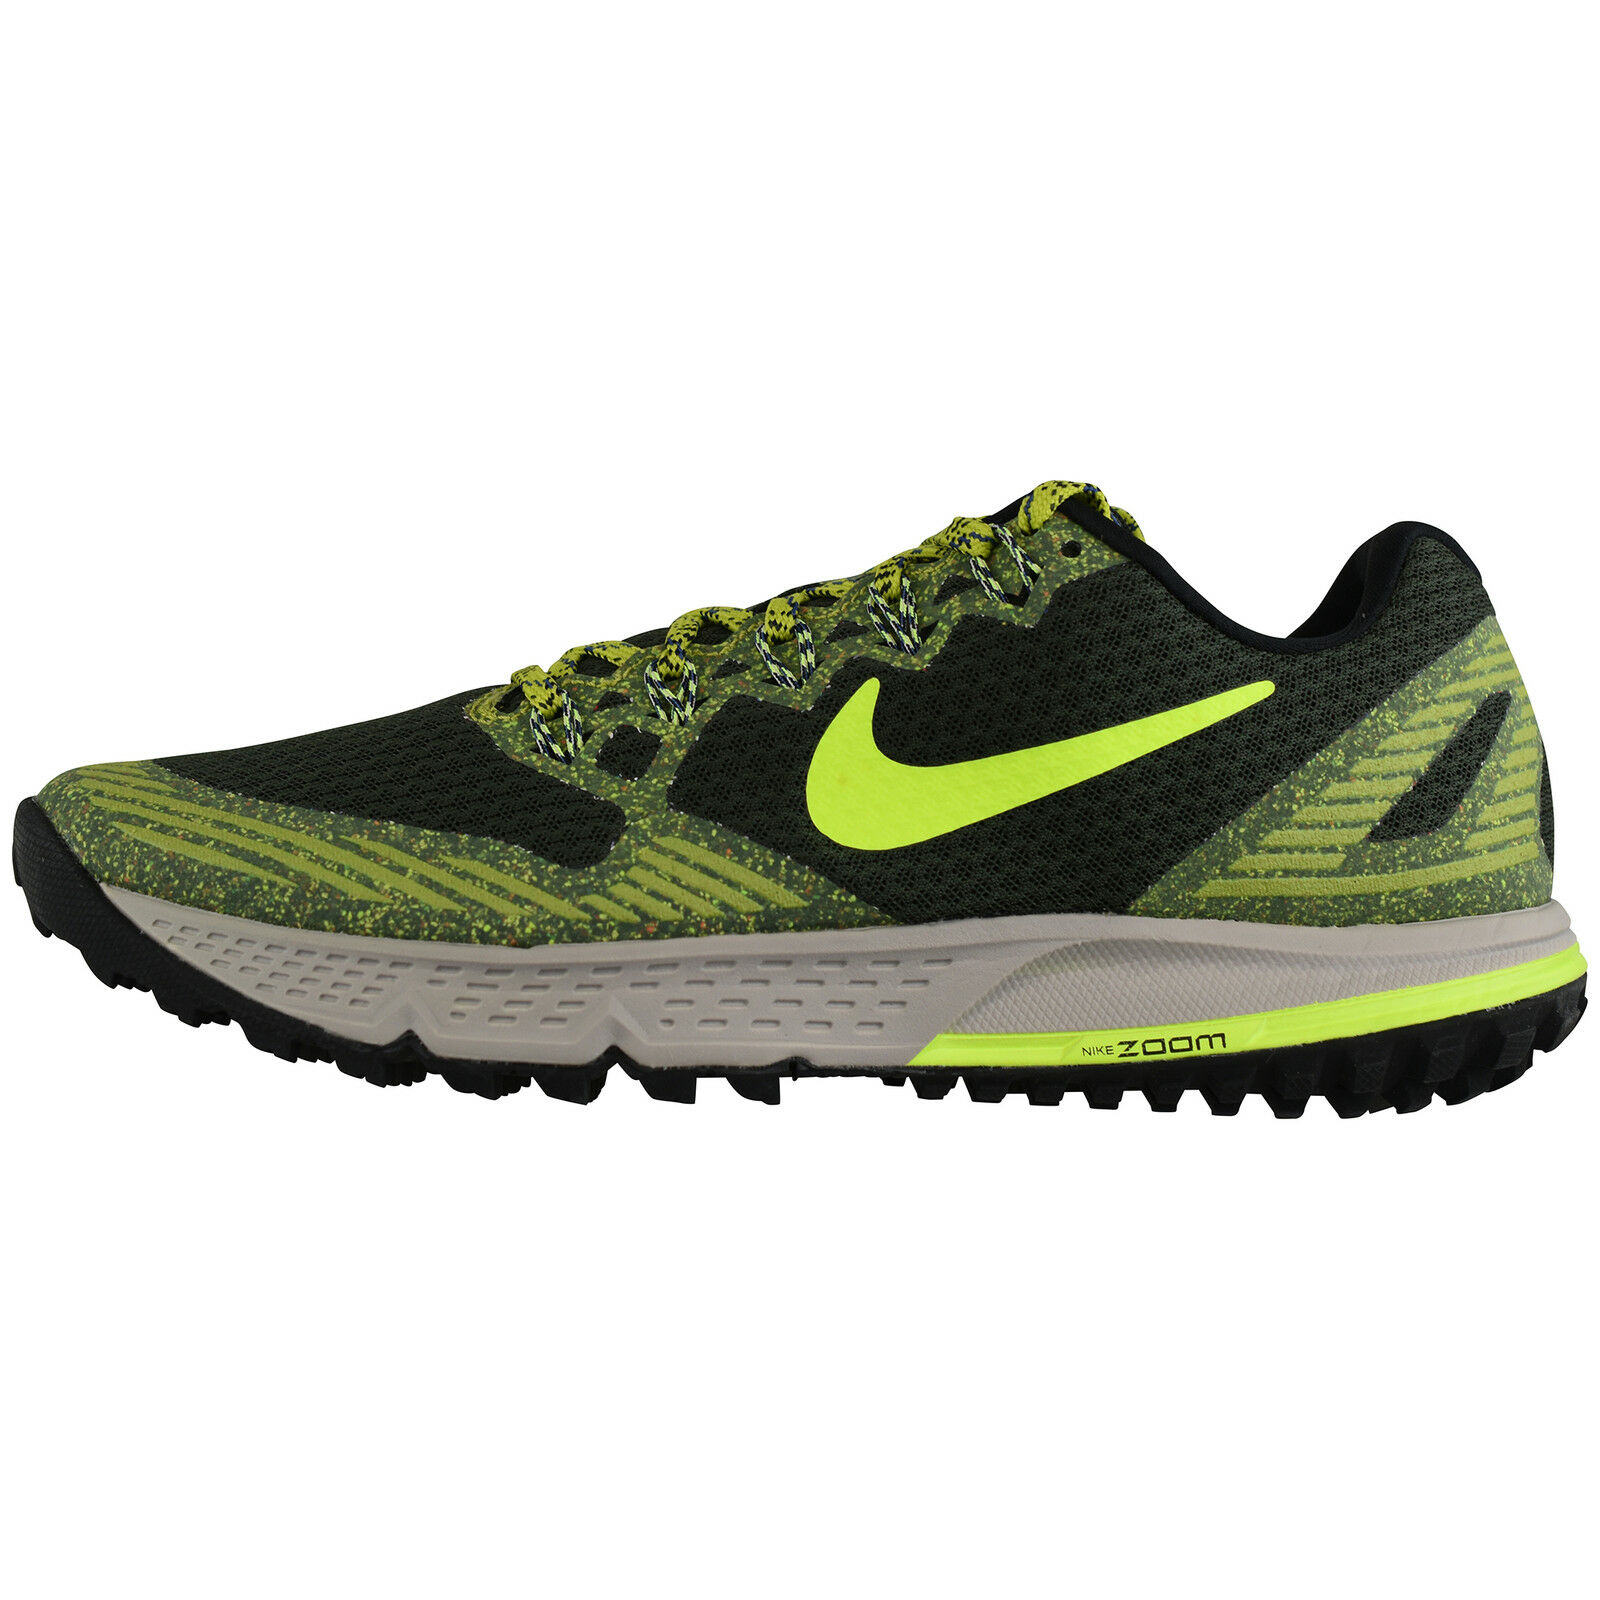 Nike Air Zoom Wildhorse 3 749336-302 Jogging Running shoes Casual Trainers